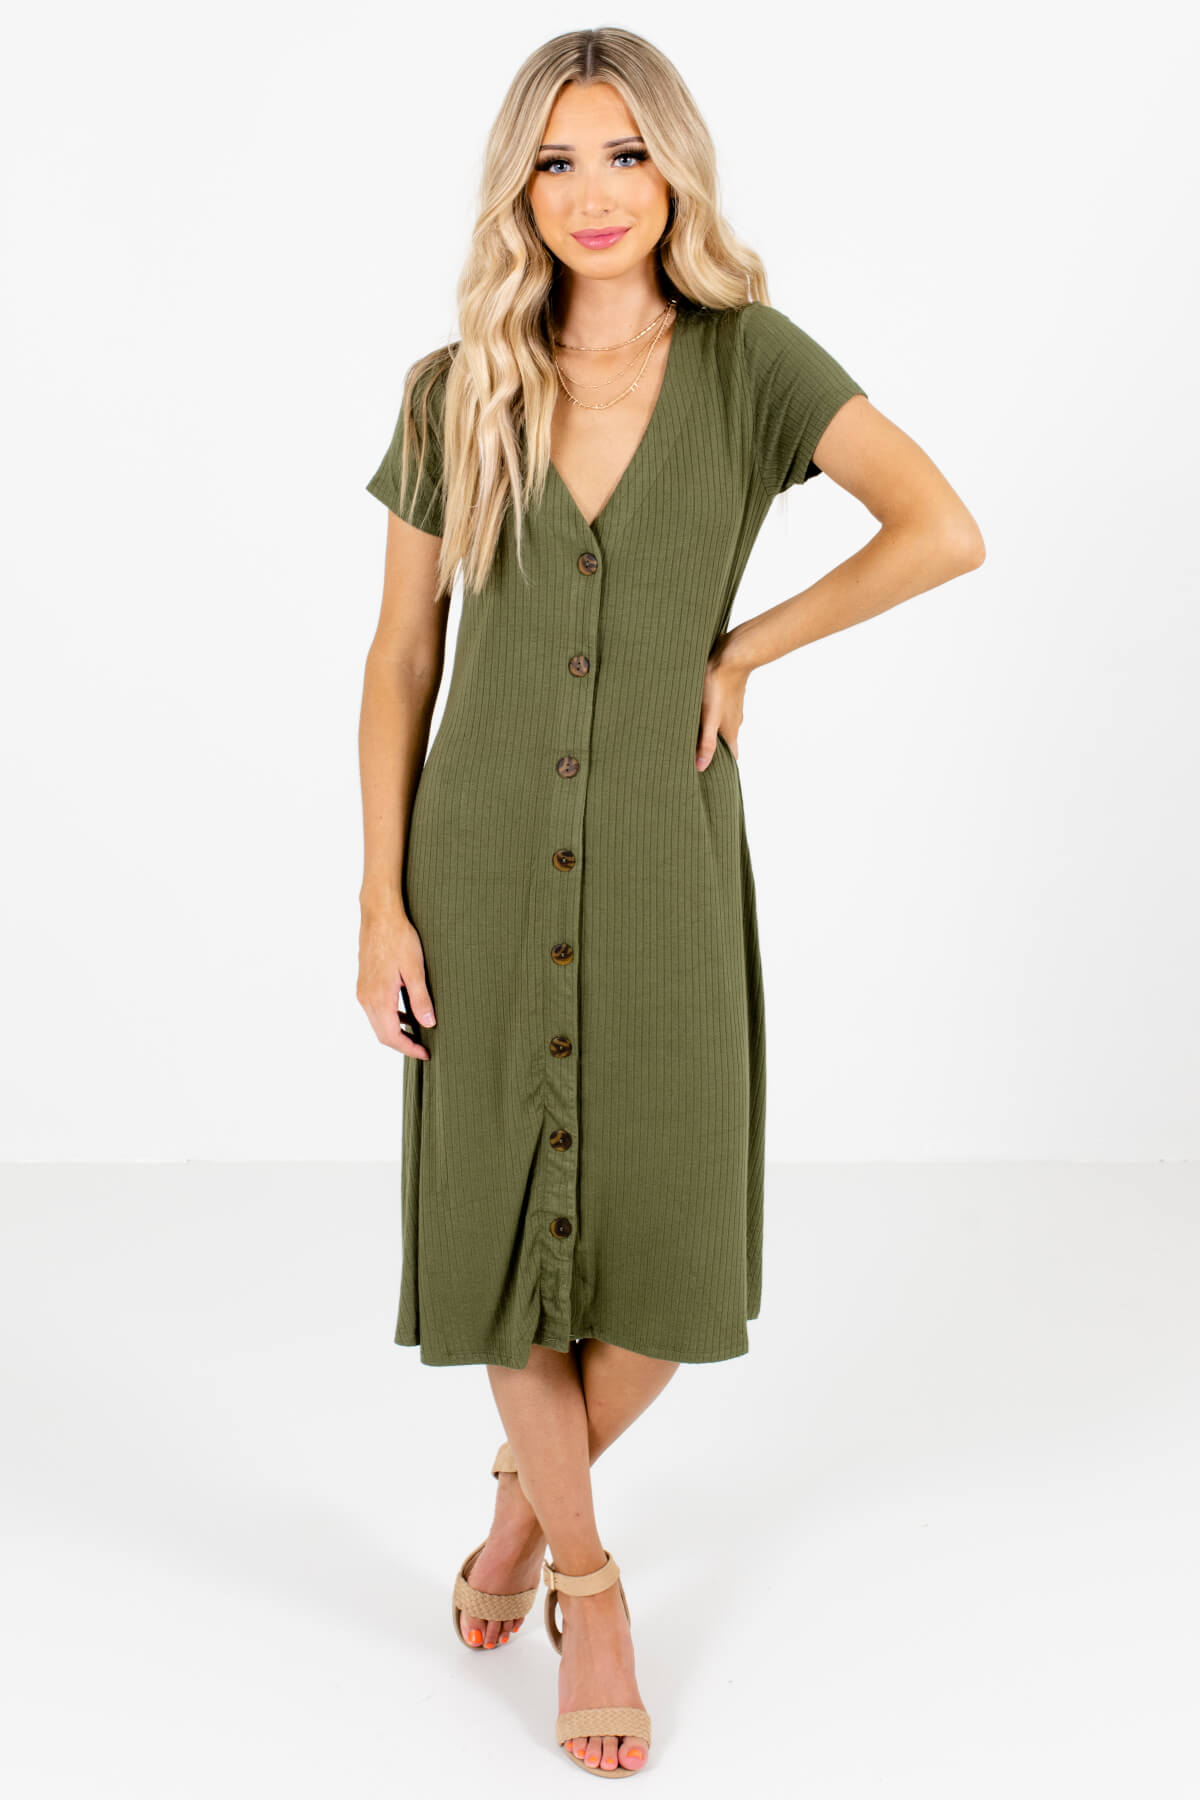 Olive Green High-Quality Ribbed Material Boutique Midi Dresses for Women